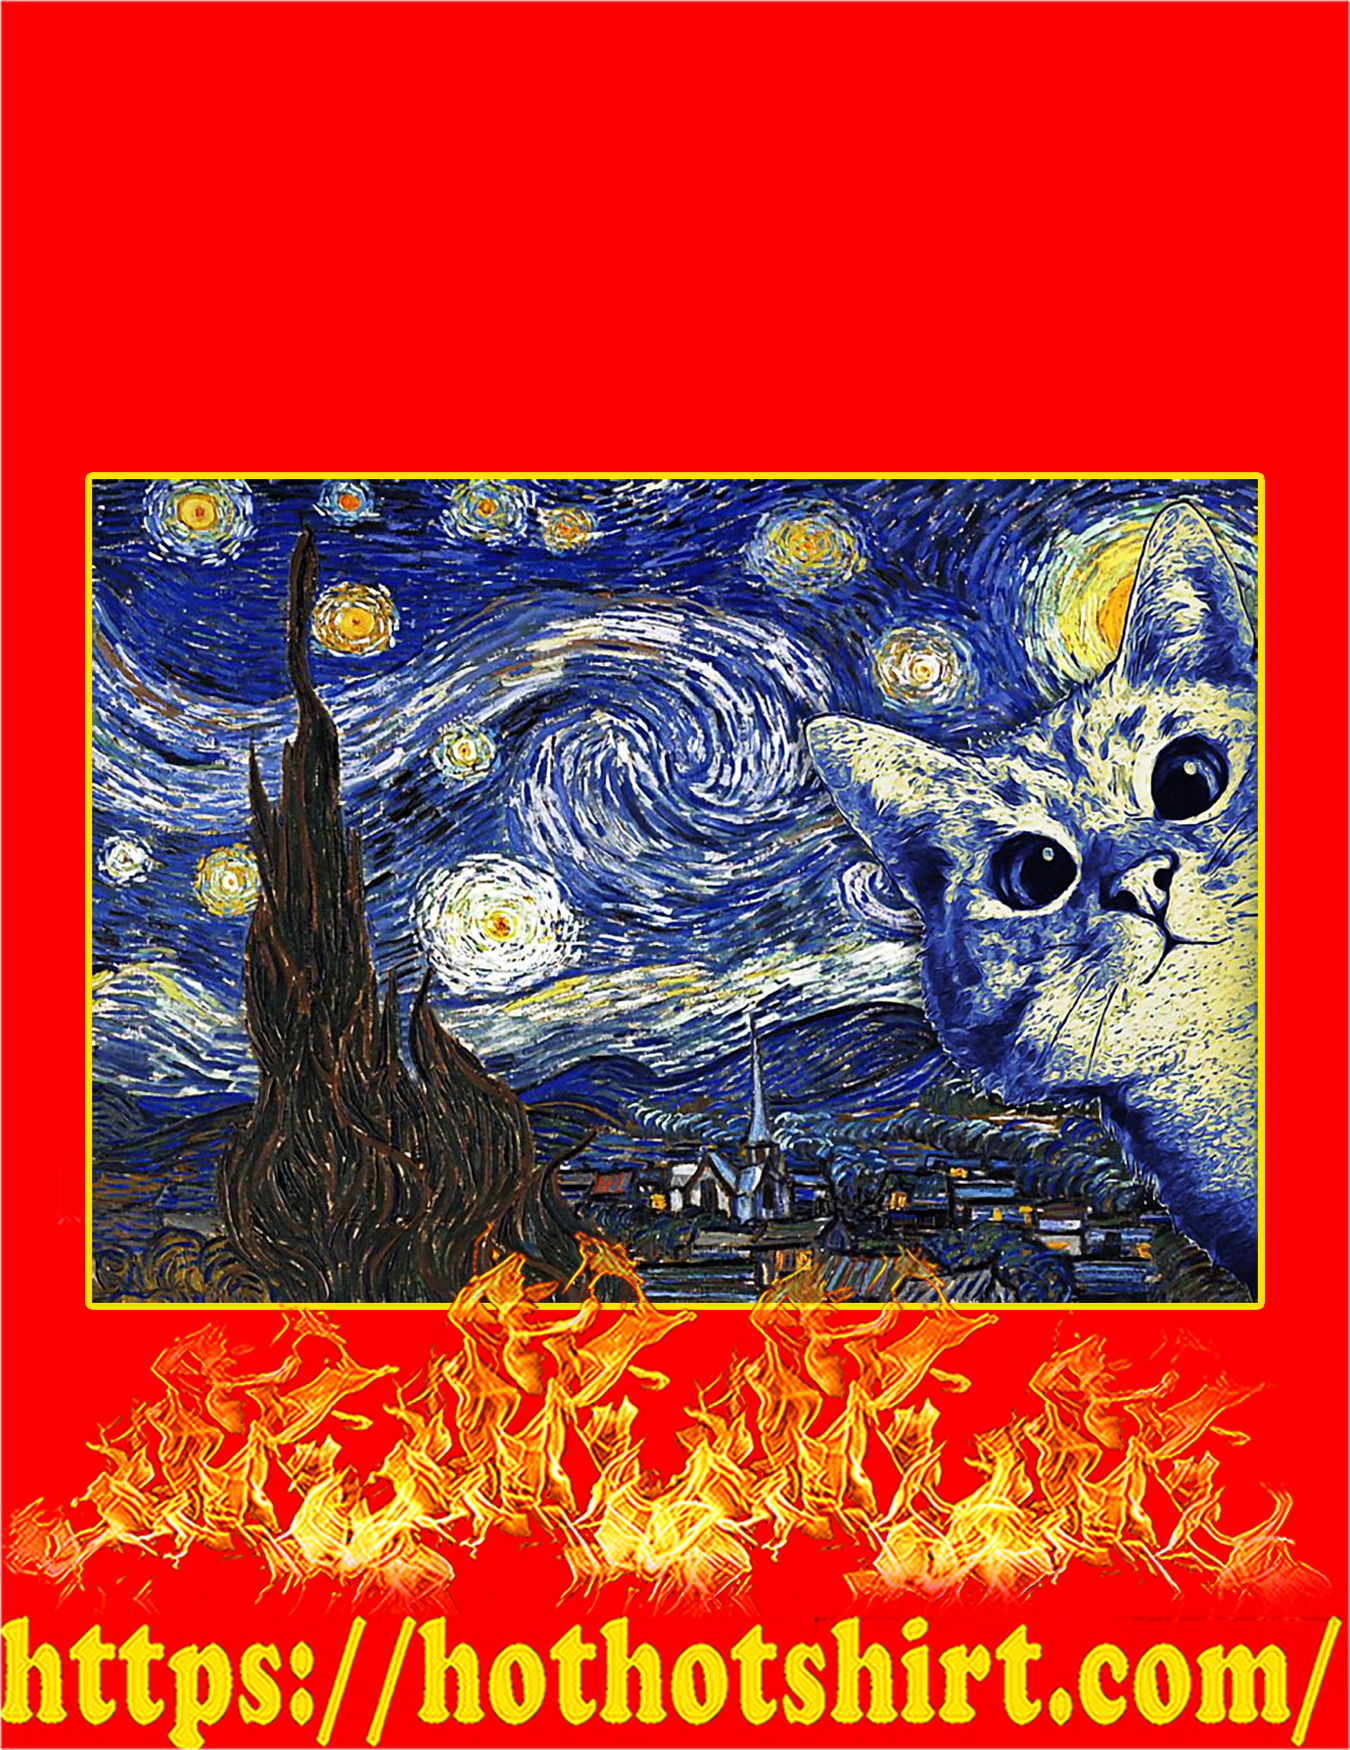 Cat The Starry Night Van Gogh Poster - A4